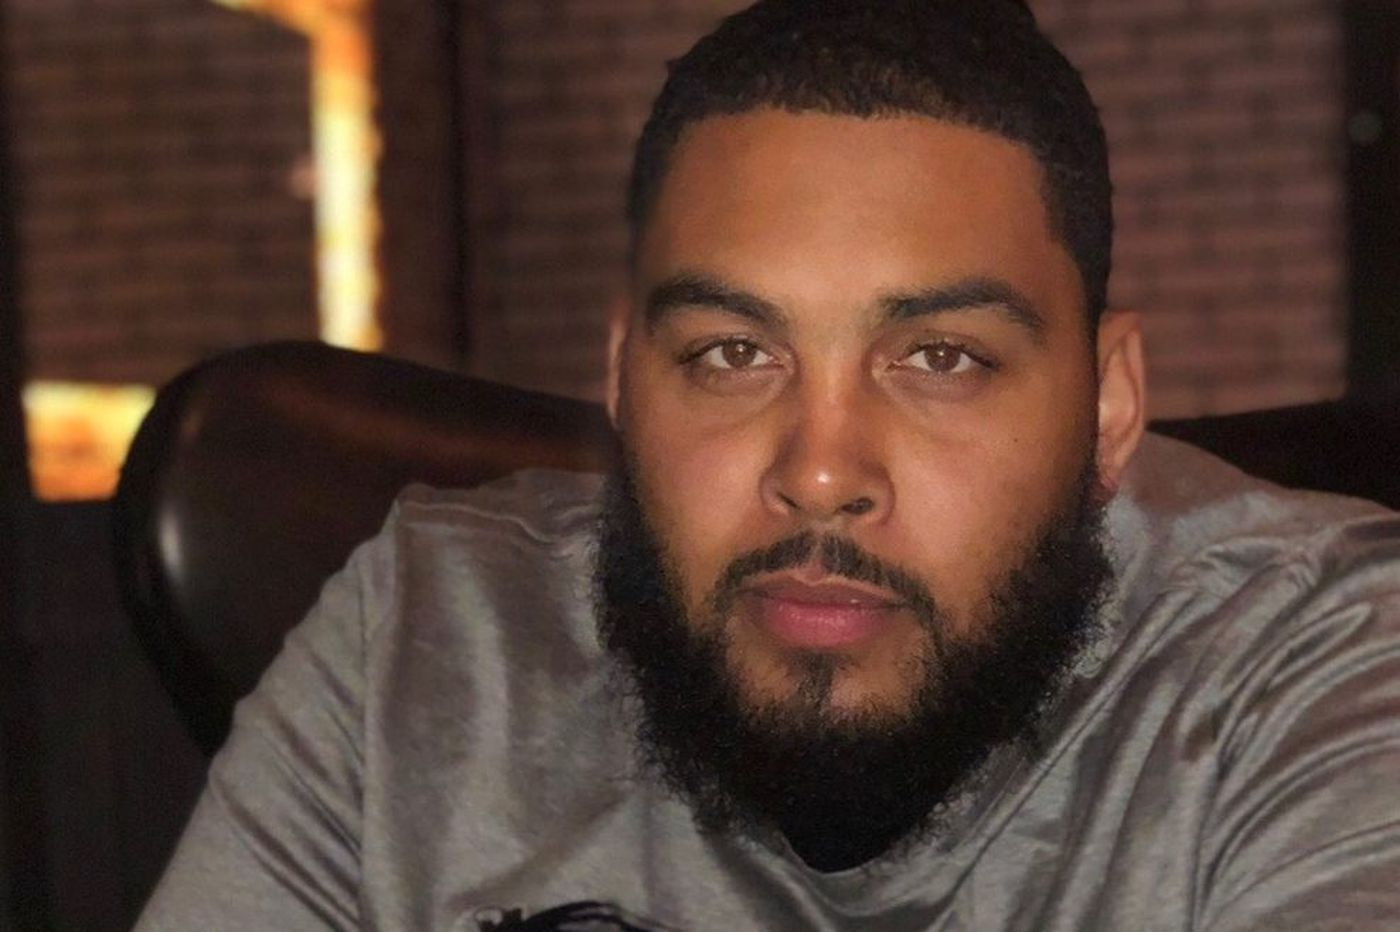 Philly cop will not be charged by AG in fatal August shooting